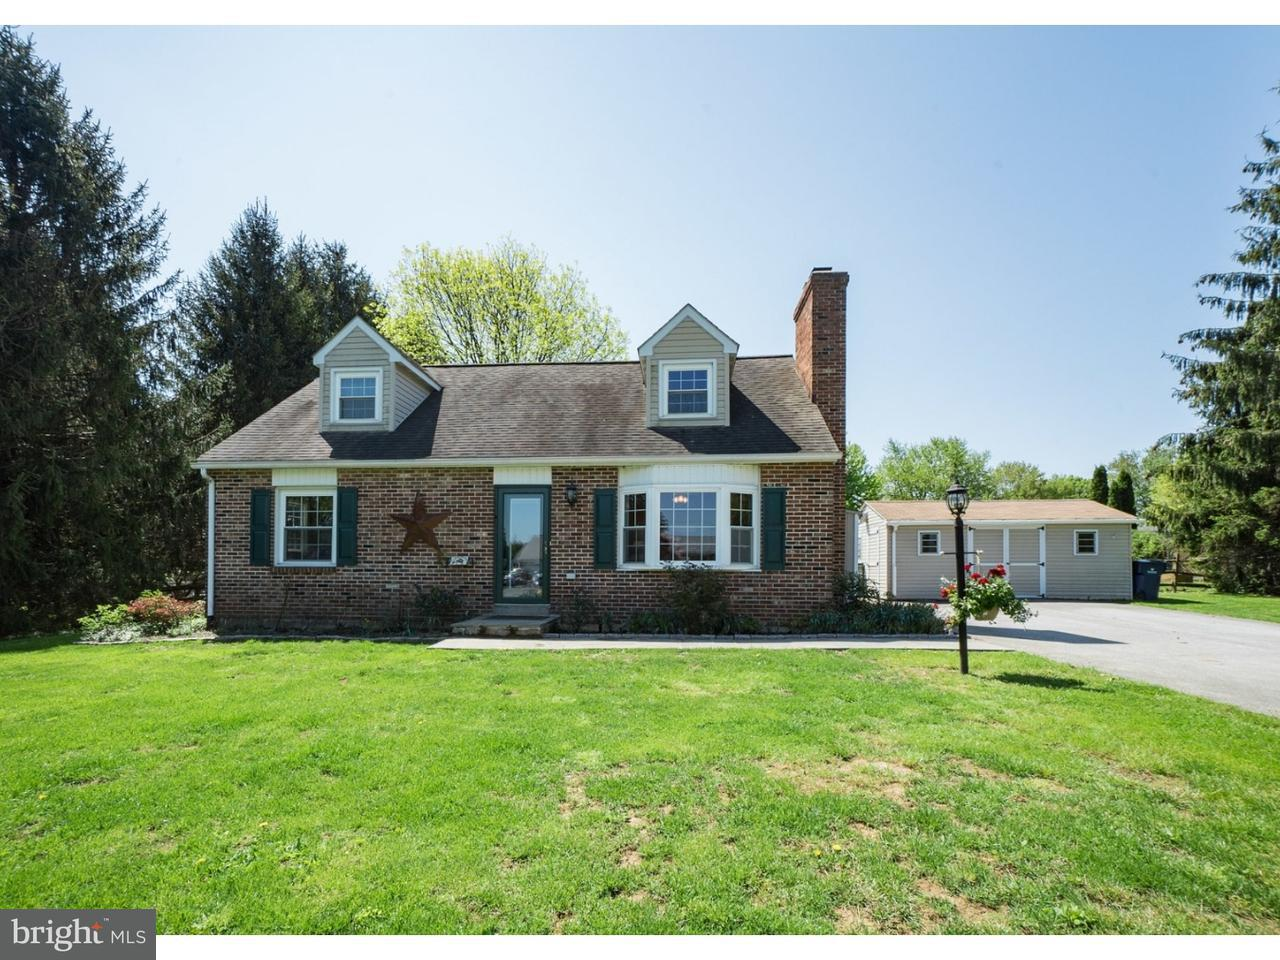 Single Family Home for Sale at 68 HOLSTEIN Drive Parkesburg, Pennsylvania 19365 United States